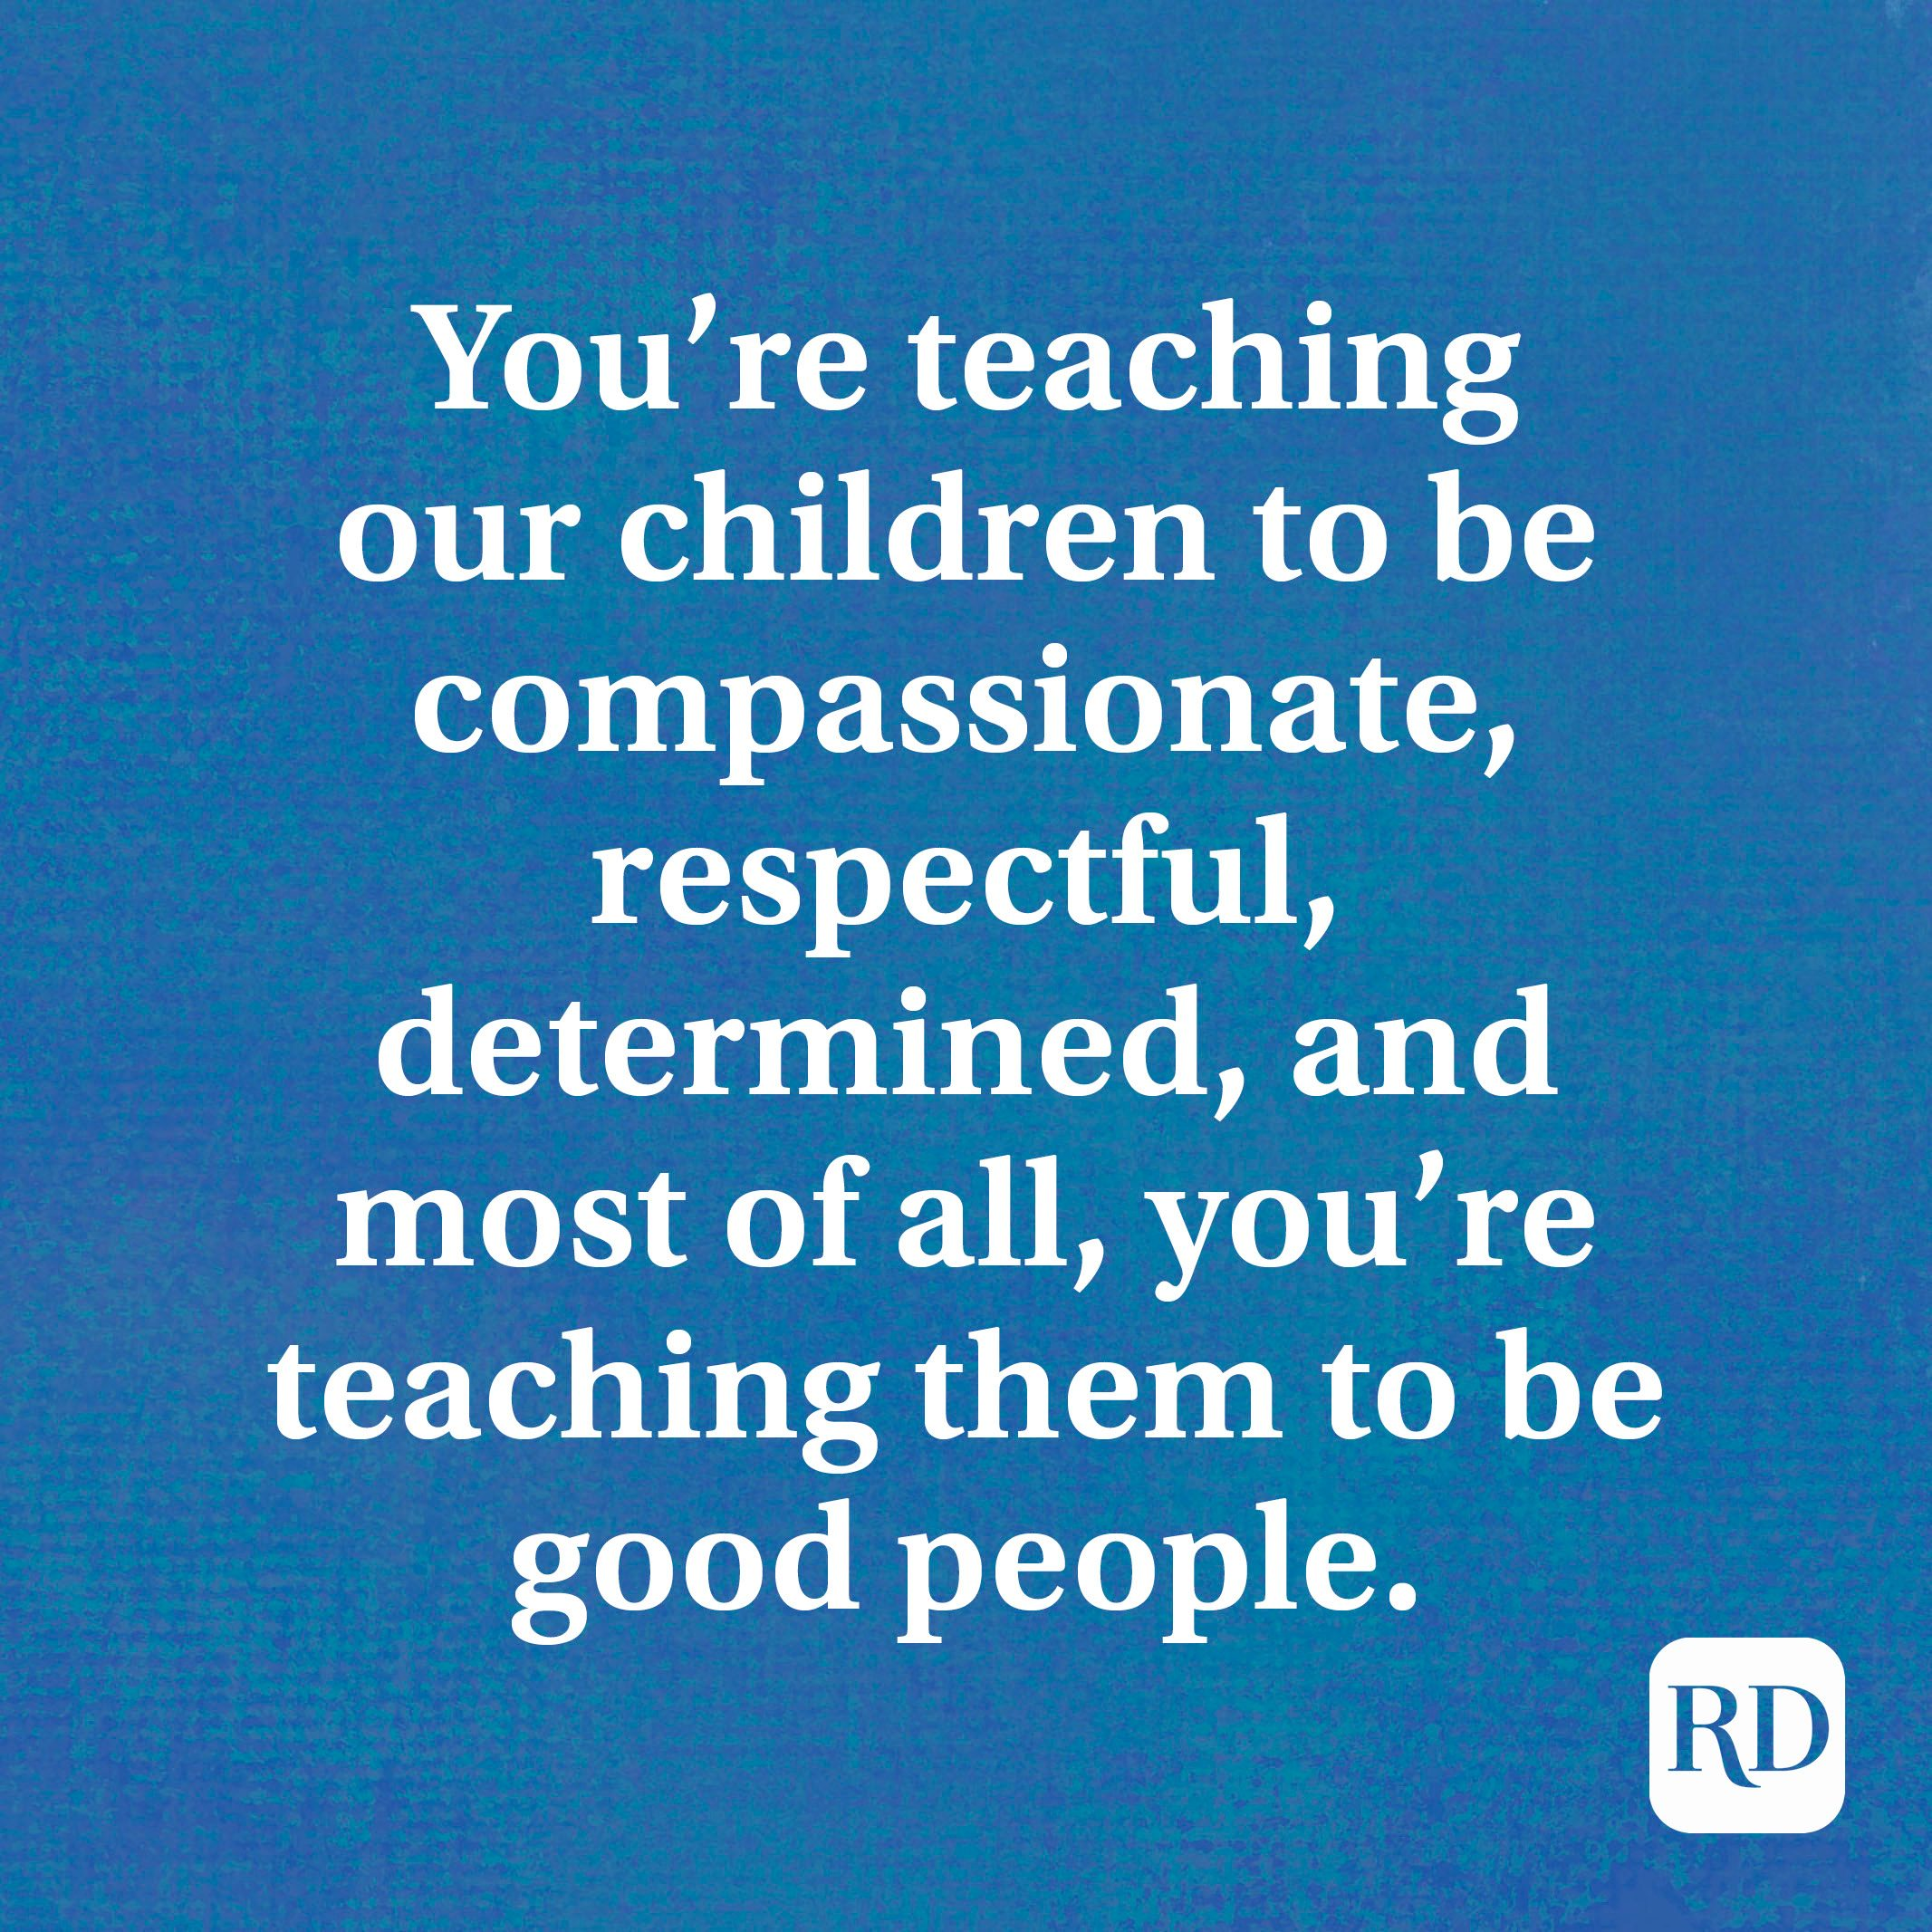 You're teaching our children to be compassionate, respectful, determined, and most of all, you're teaching them to be good people.